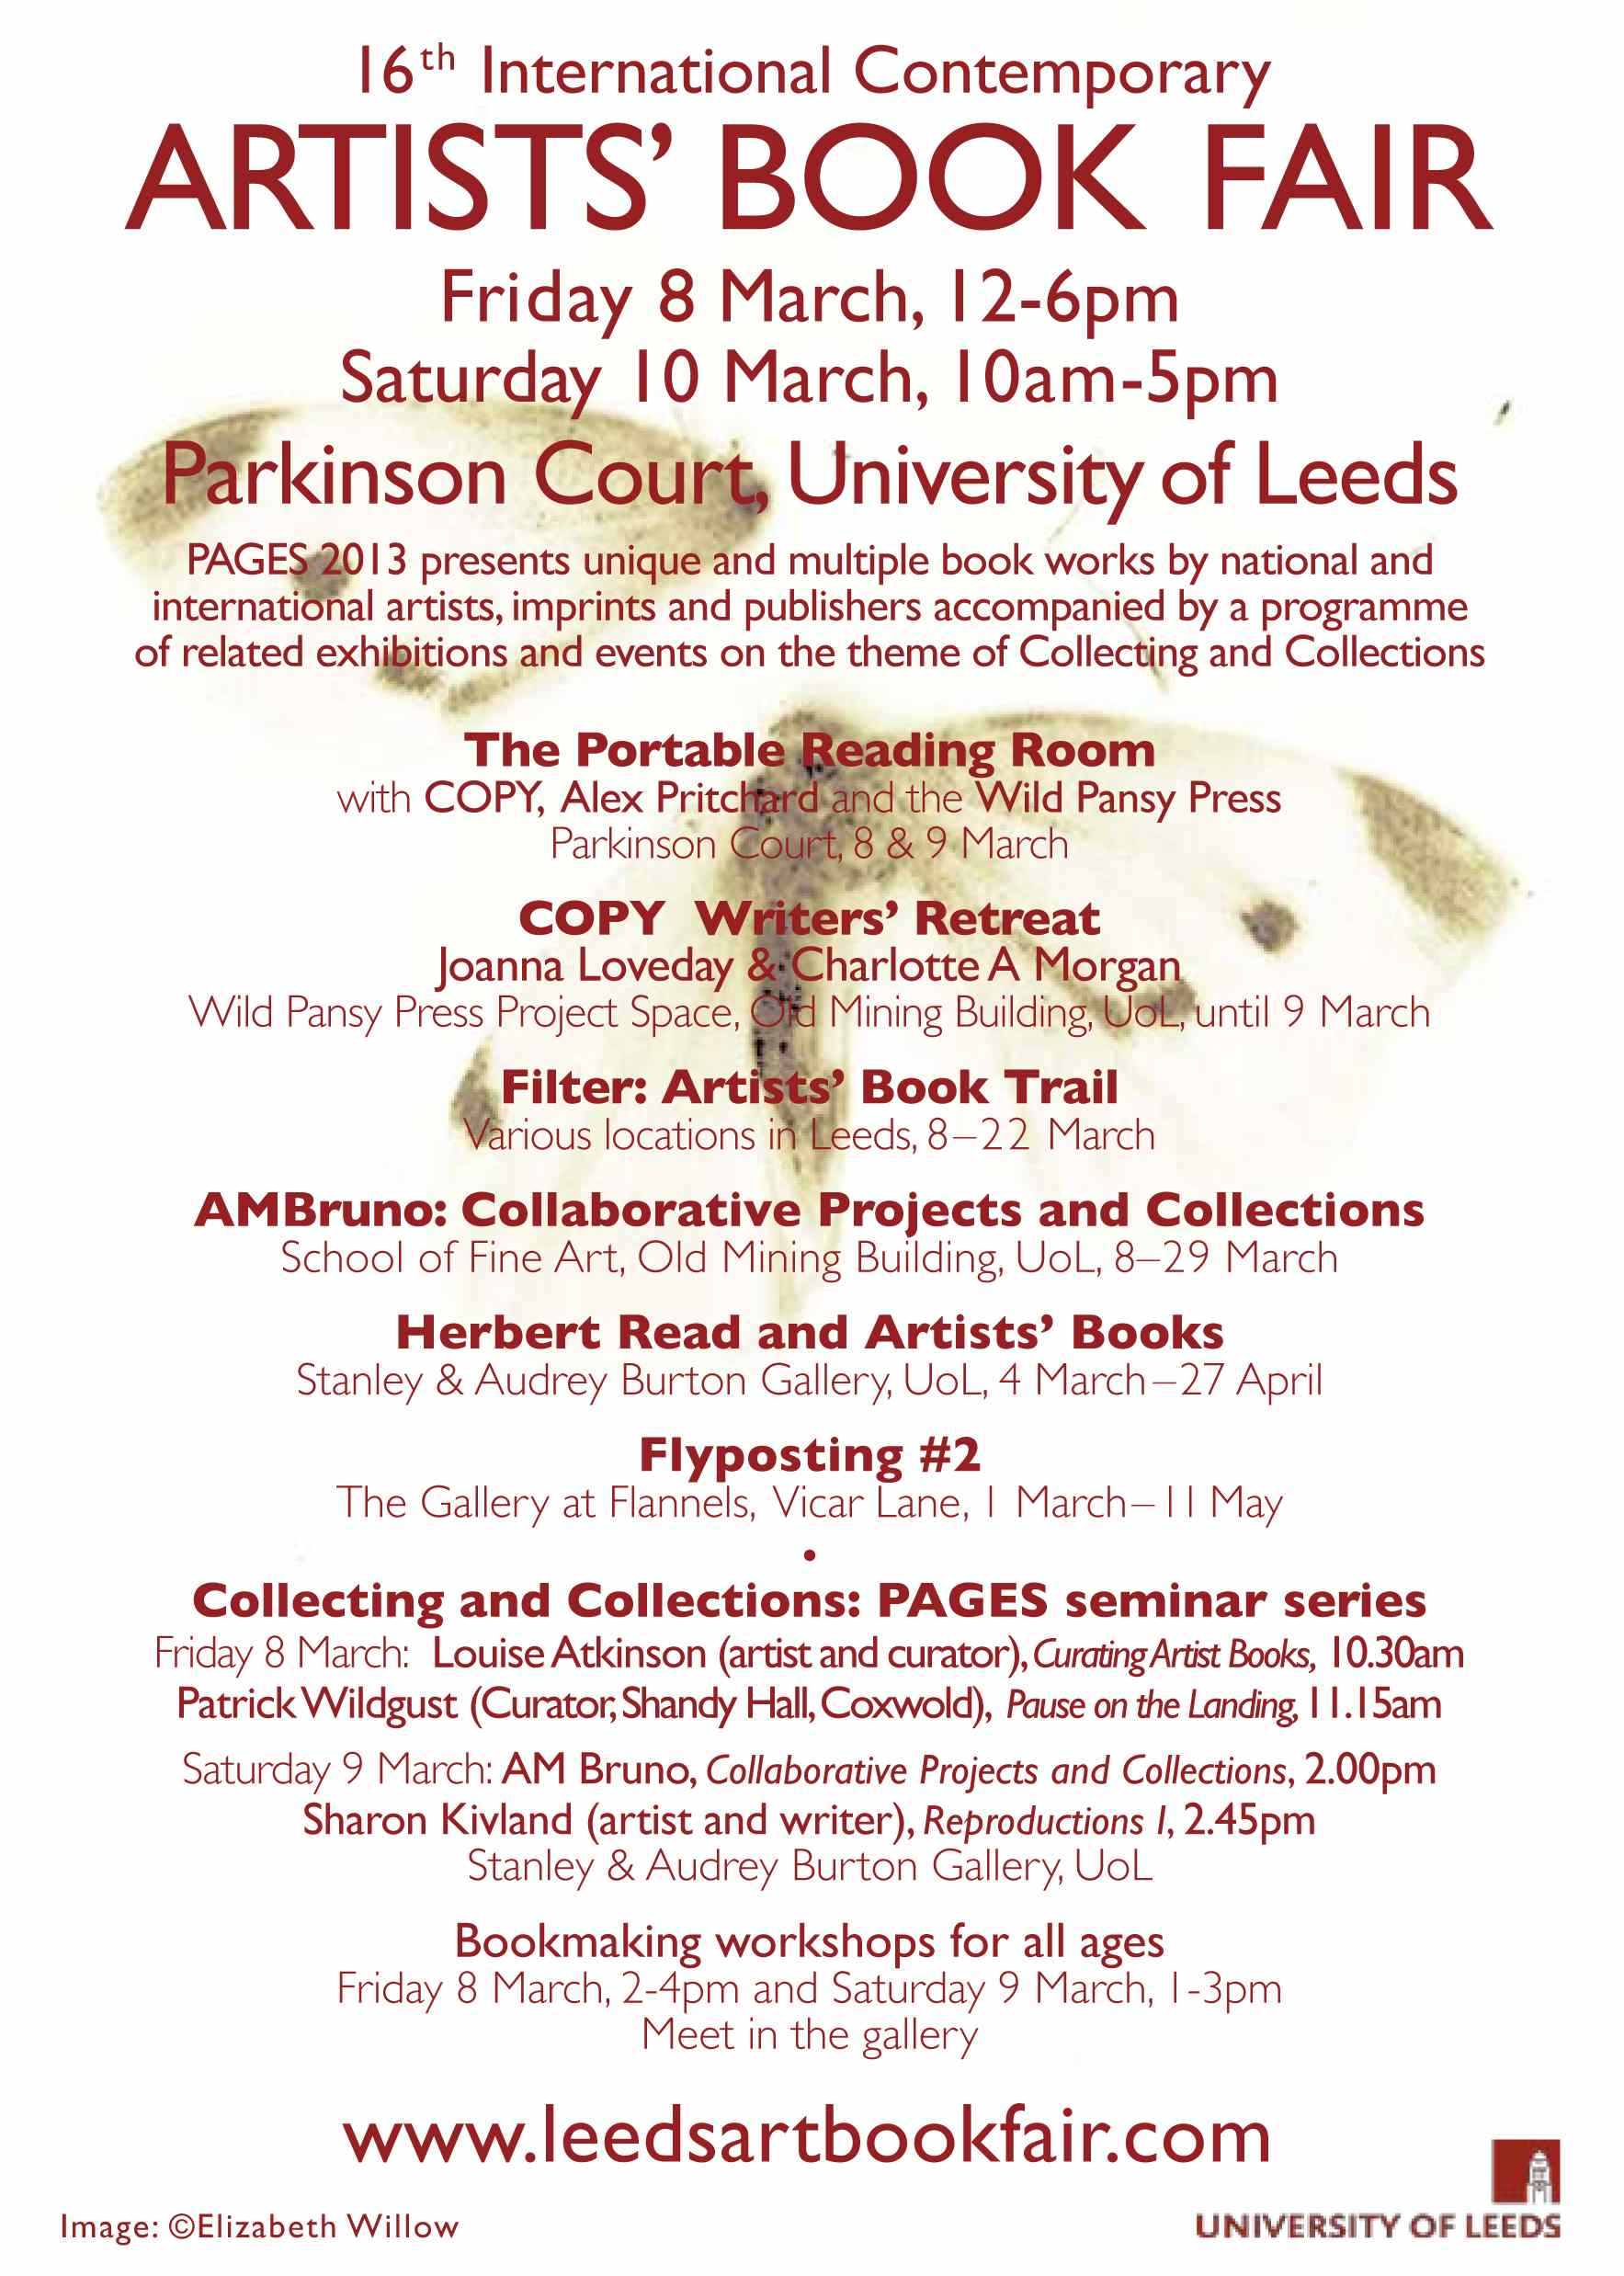 Leeds Art Book Fair 2013